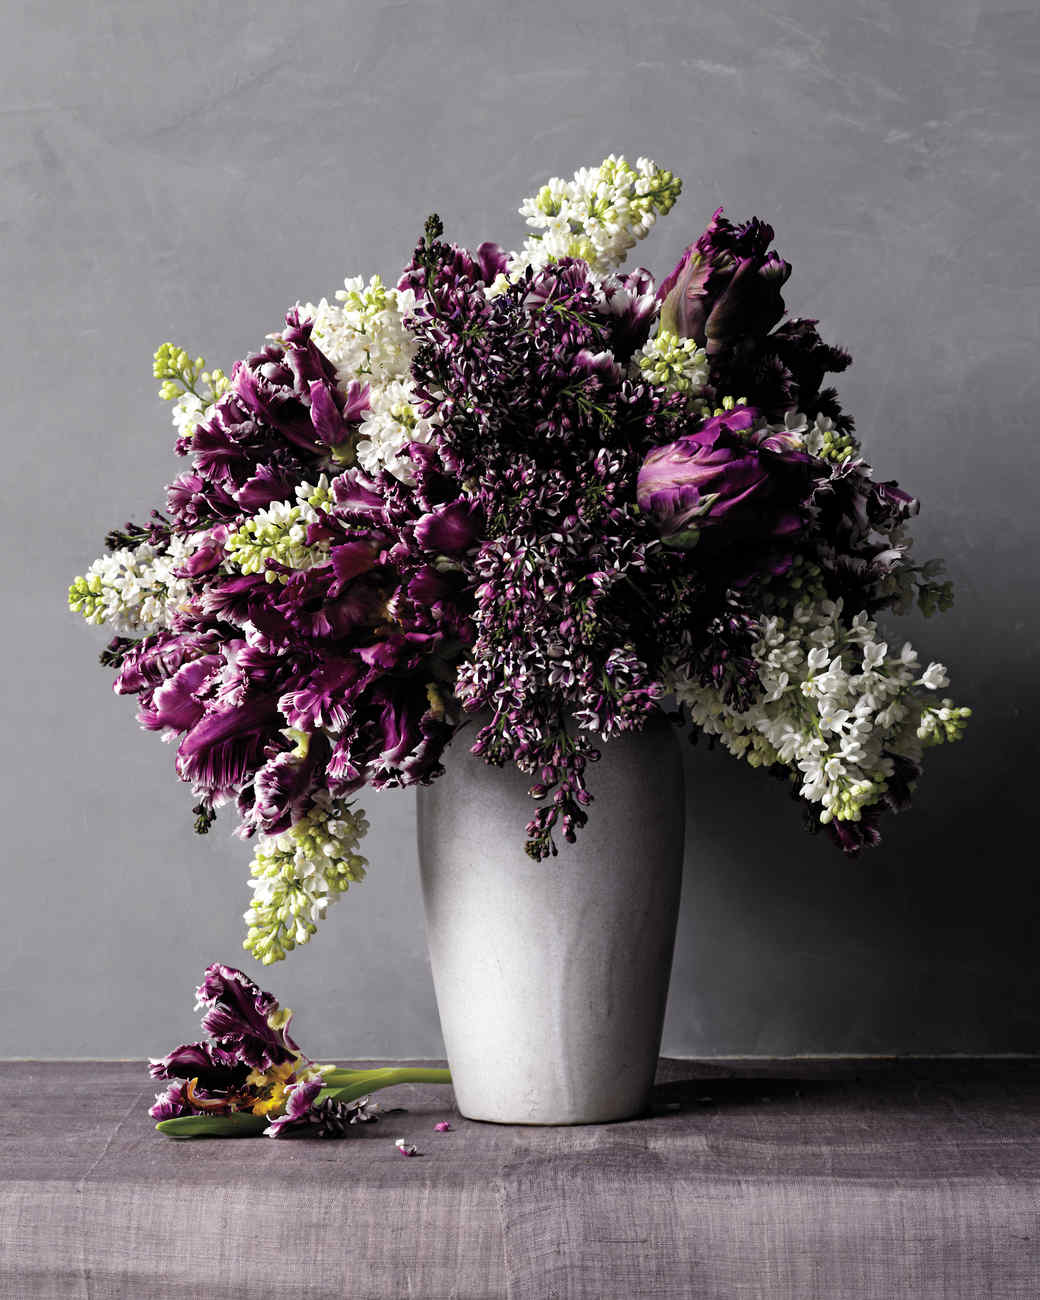 lilacs-flower-arrangement-n-comp-d111001.jpg